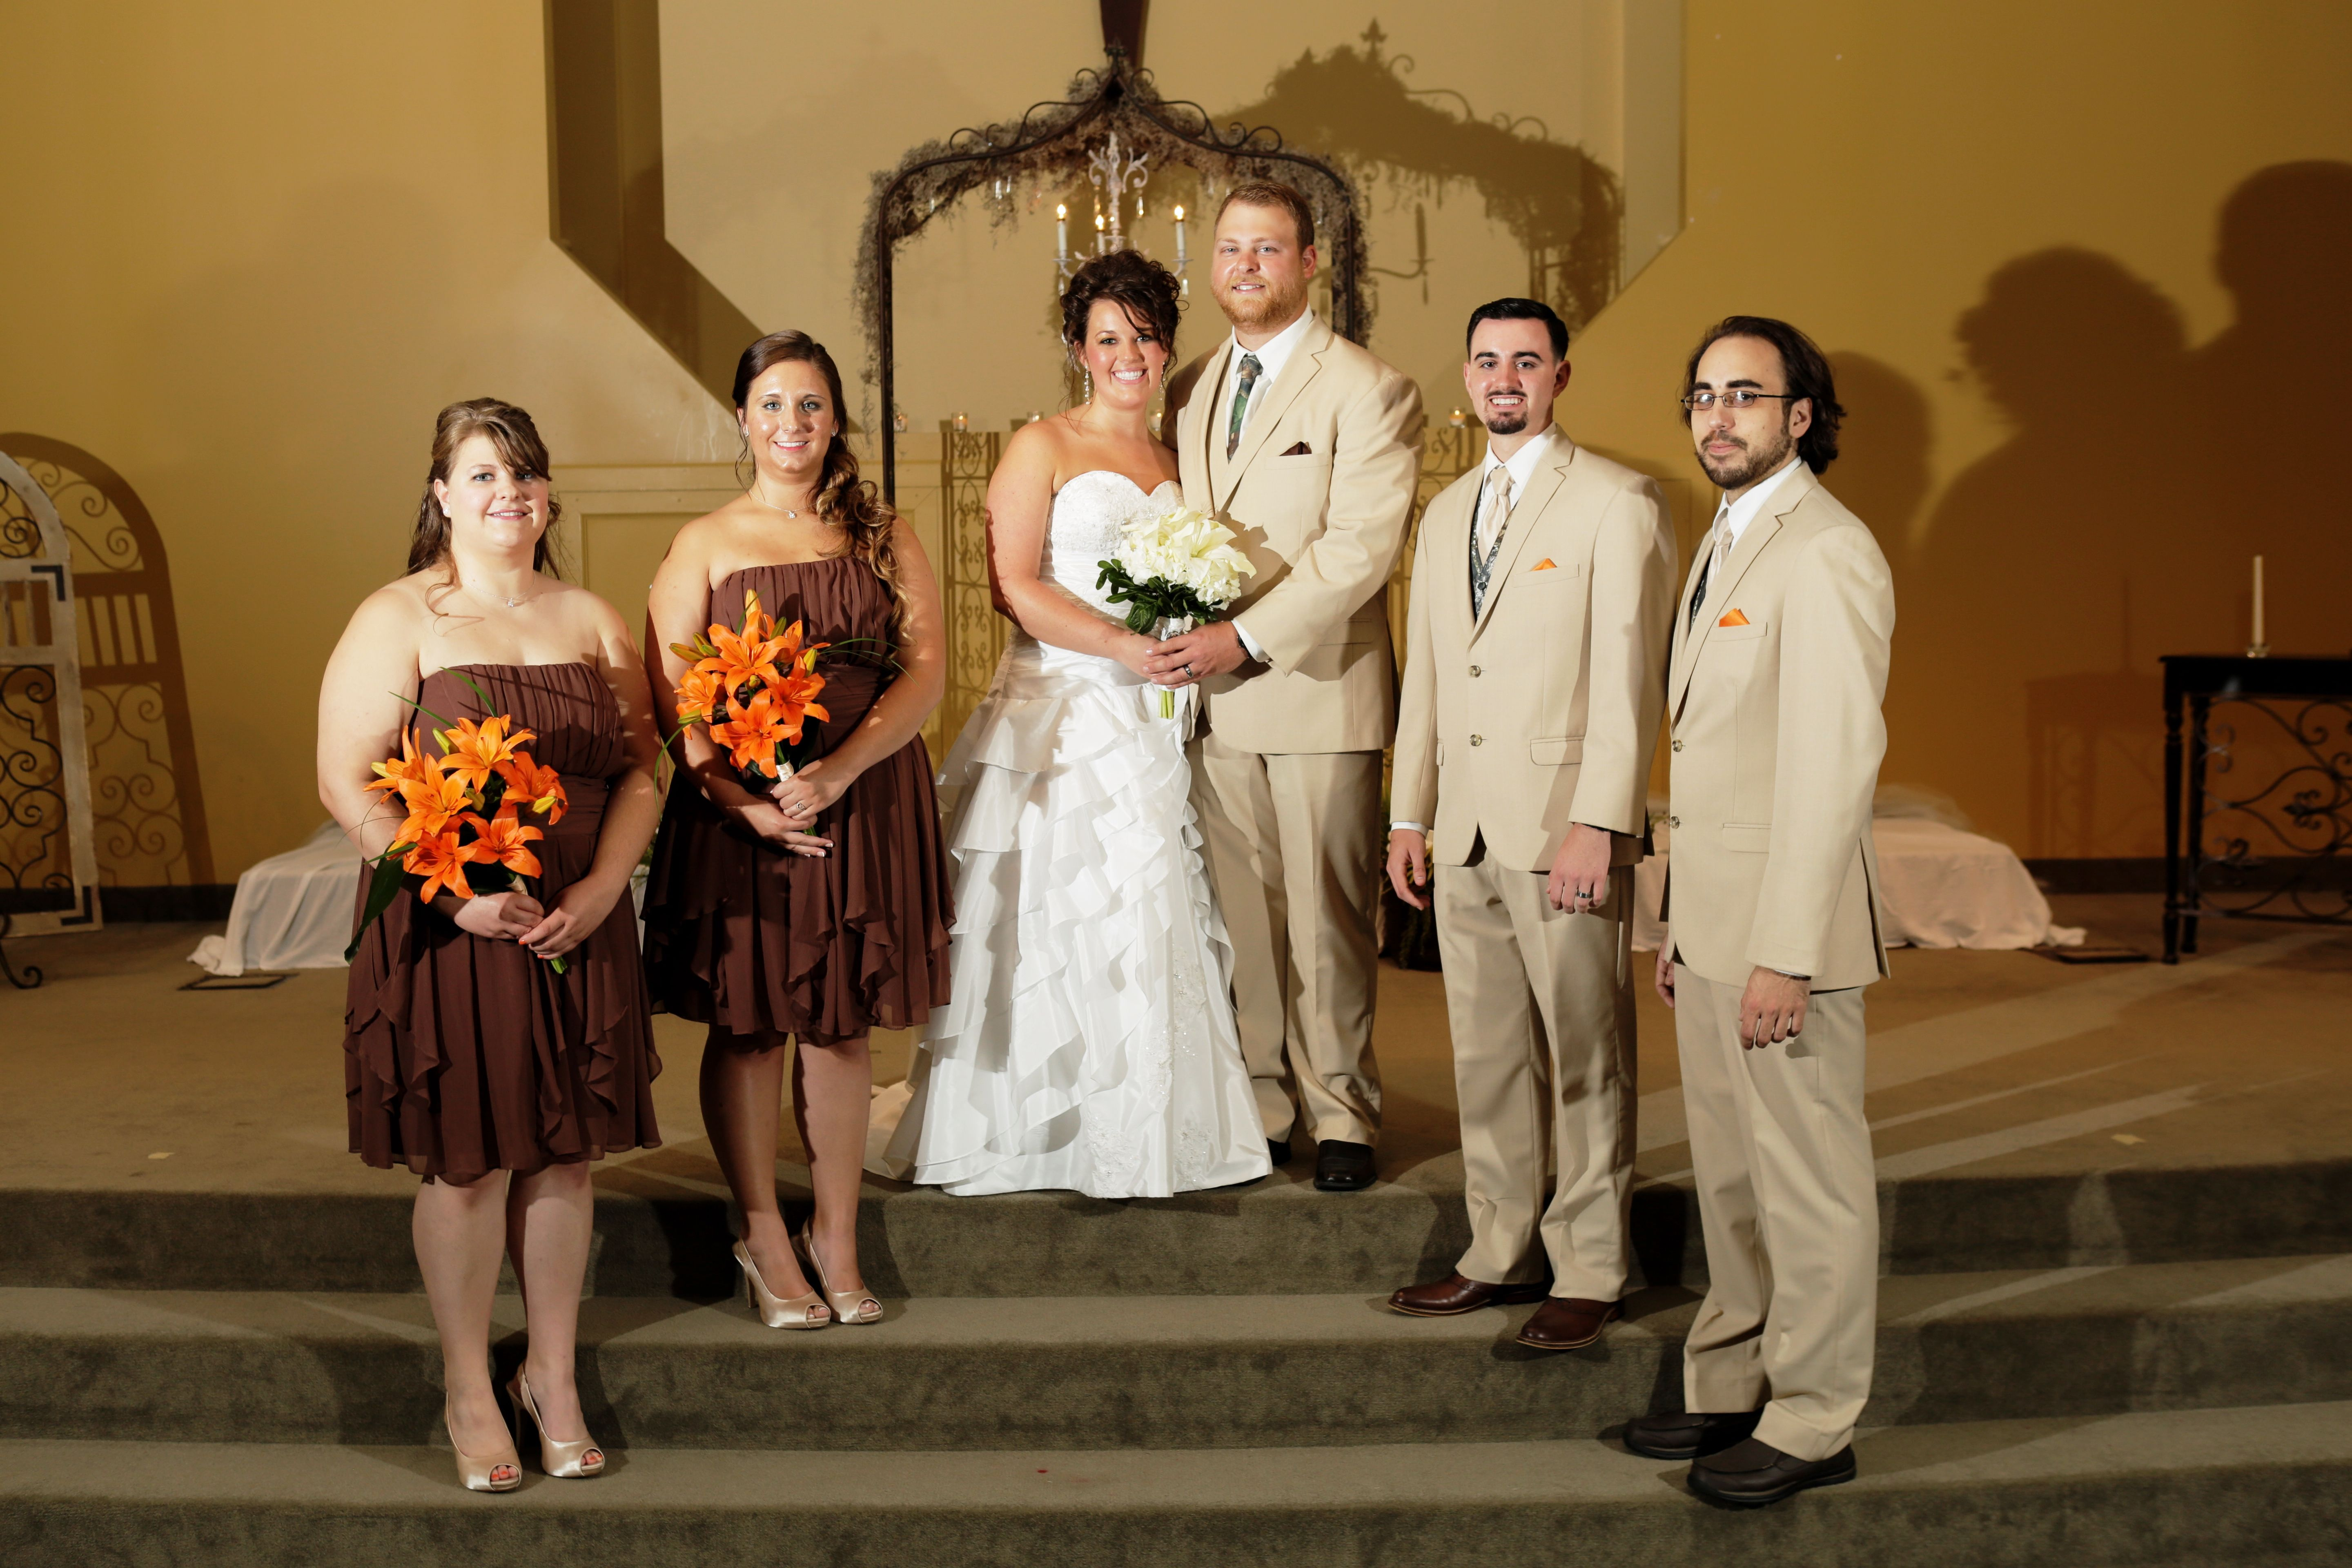 Small wedding party for a summer wedding knee length brown knee length brown bridesmaid dresses with orange bouquets the groomsmen were in tan suits tan tie camo vests orange pocket squares ombrellifo Gallery